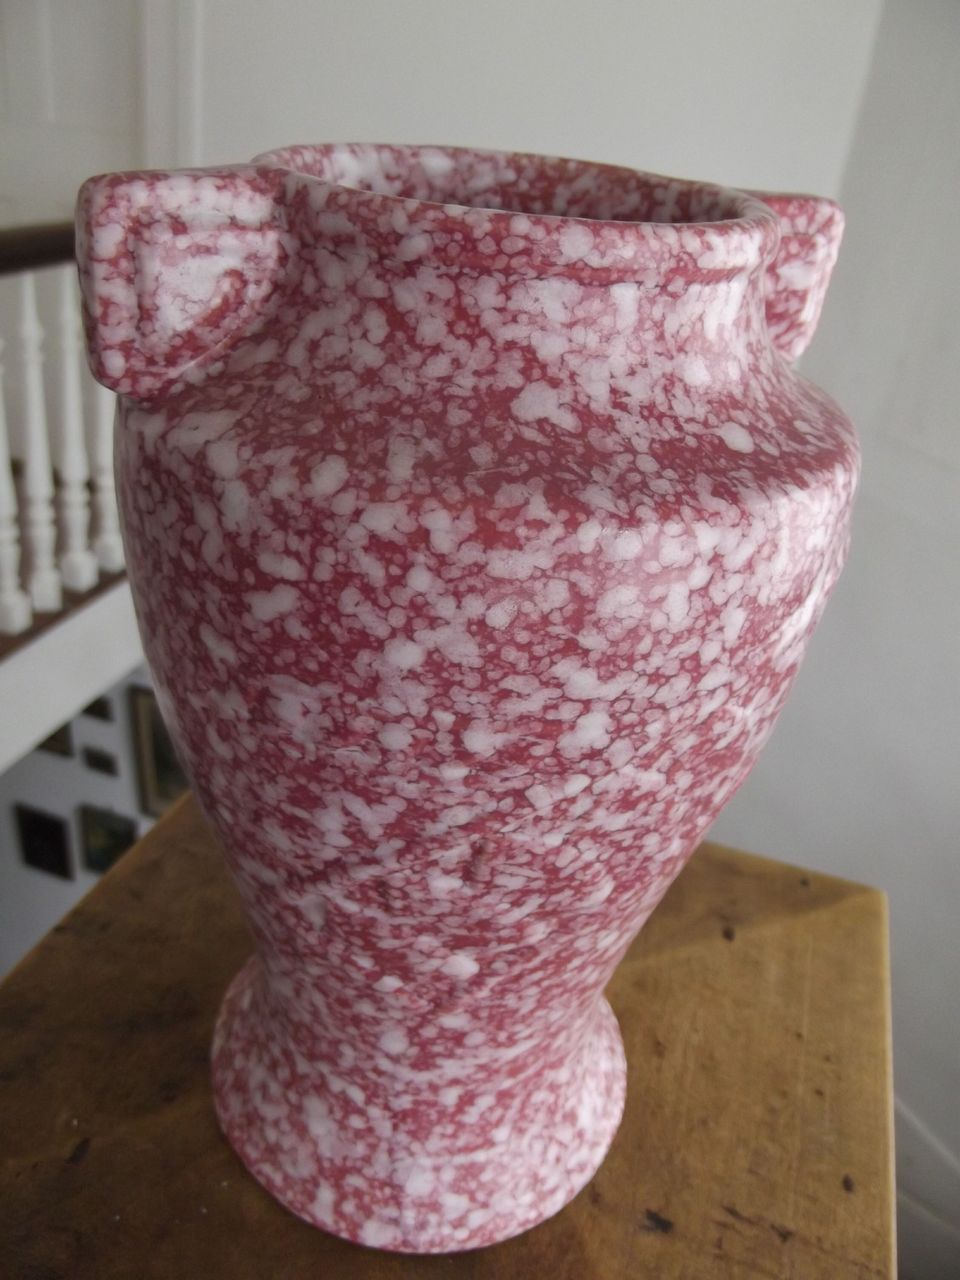 Speckled Pottery Vase